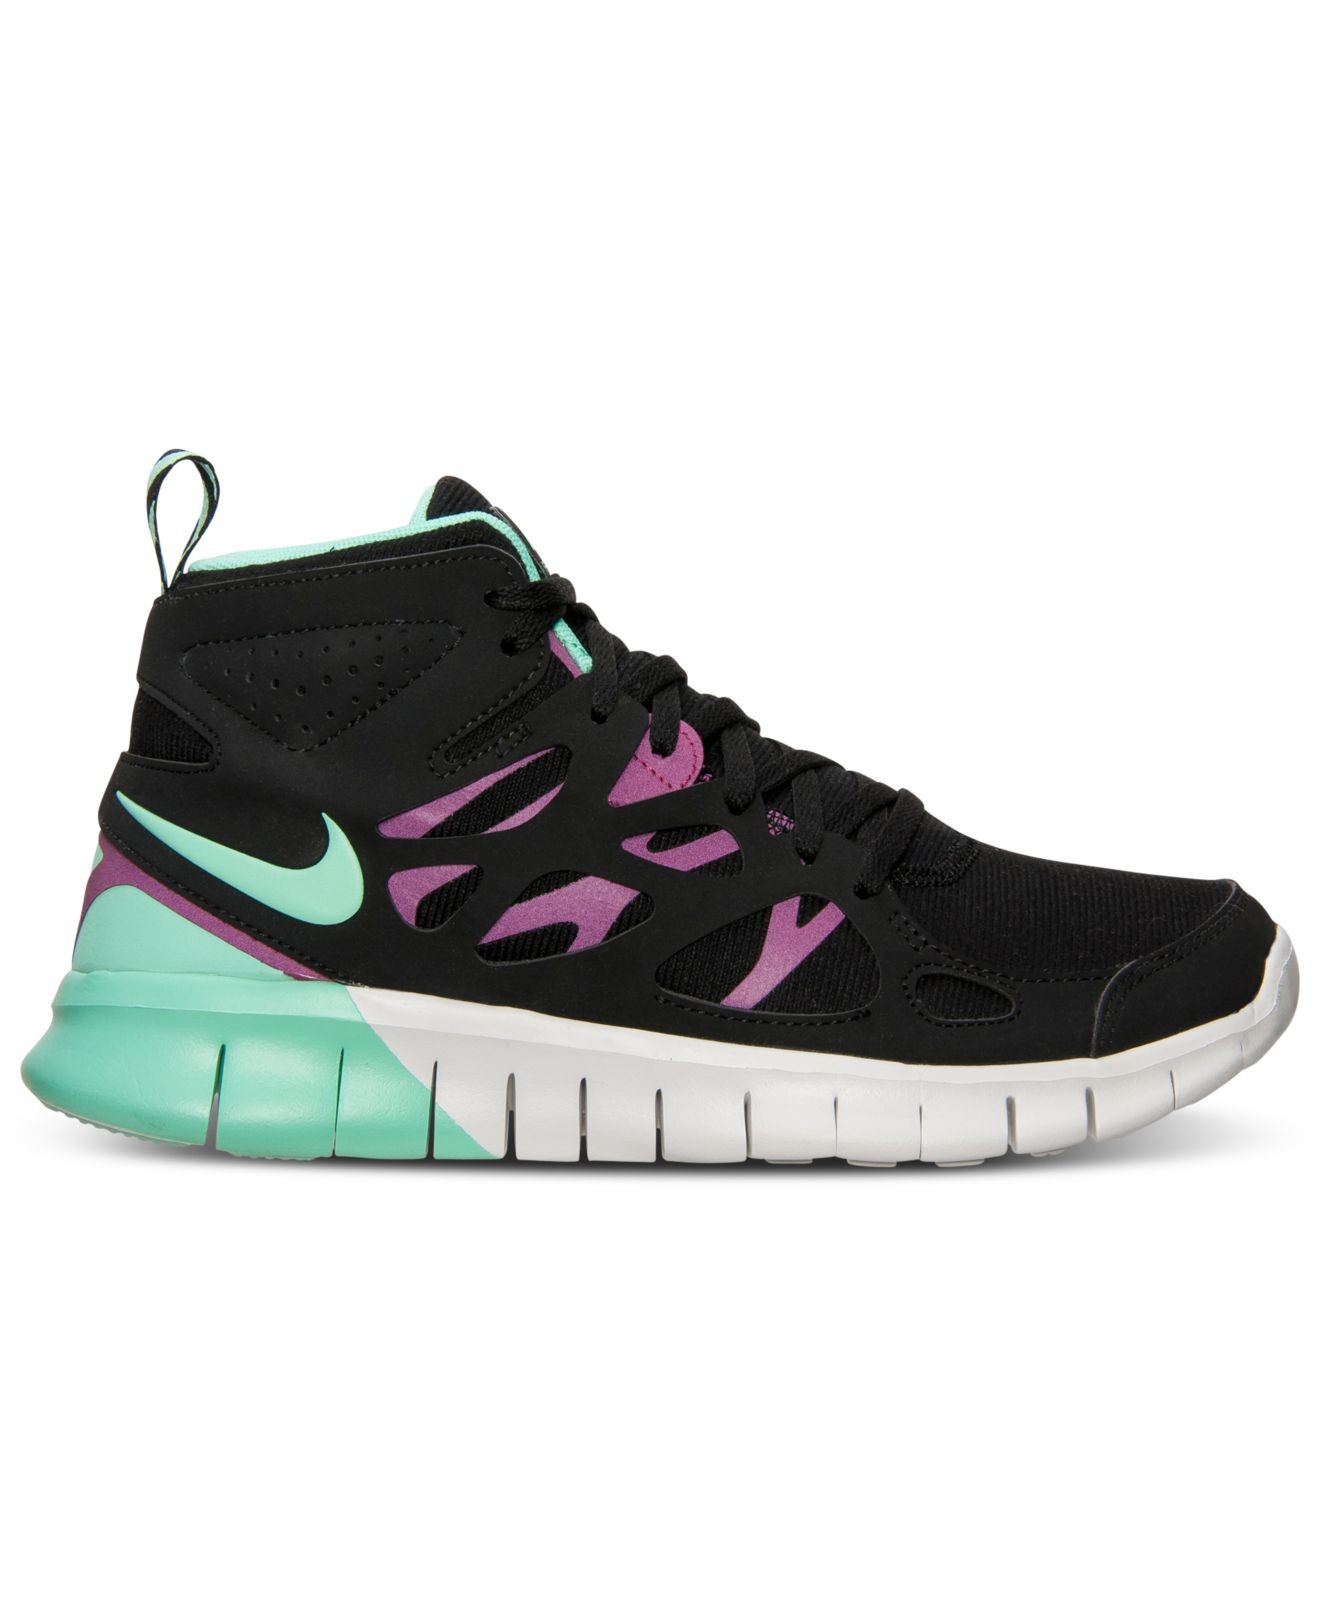 Lyst - Nike Womens Free Run 2 Mid Sneakerboot From Finish -4994